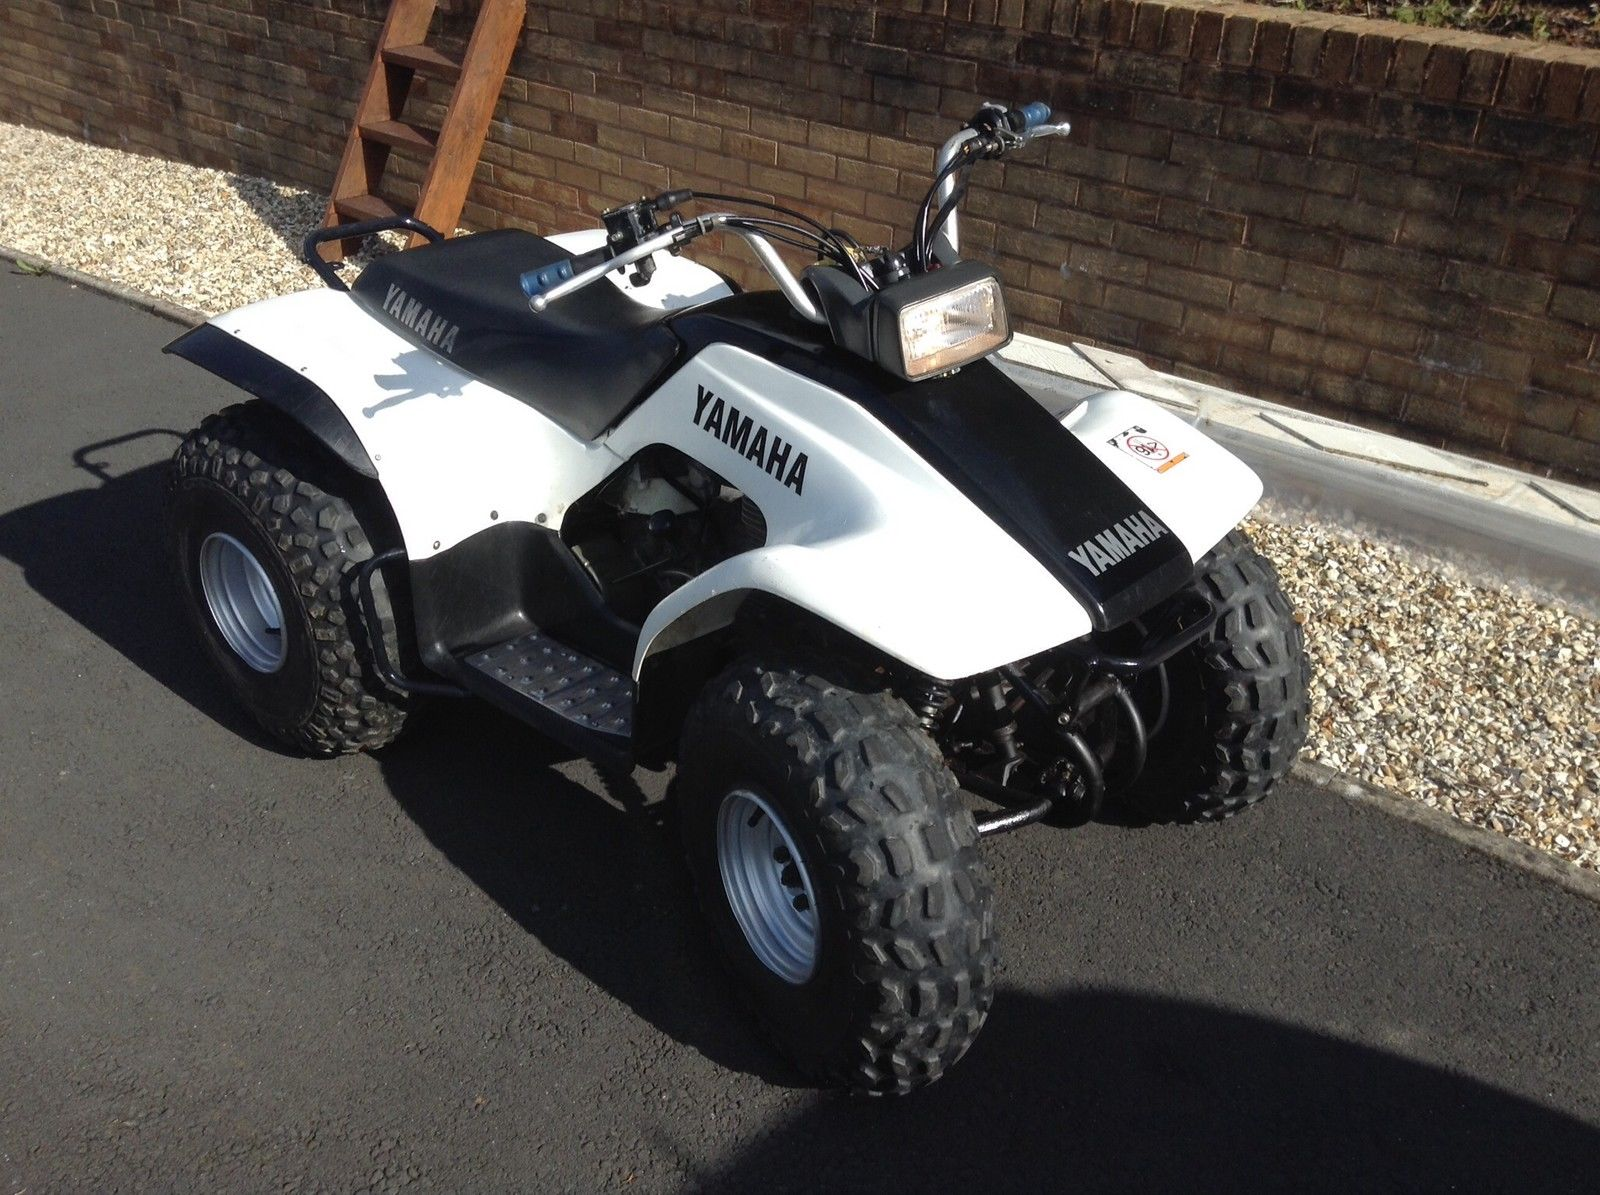 yamaha breeze 125cc quad bike electric start automatic with reverse. Black Bedroom Furniture Sets. Home Design Ideas